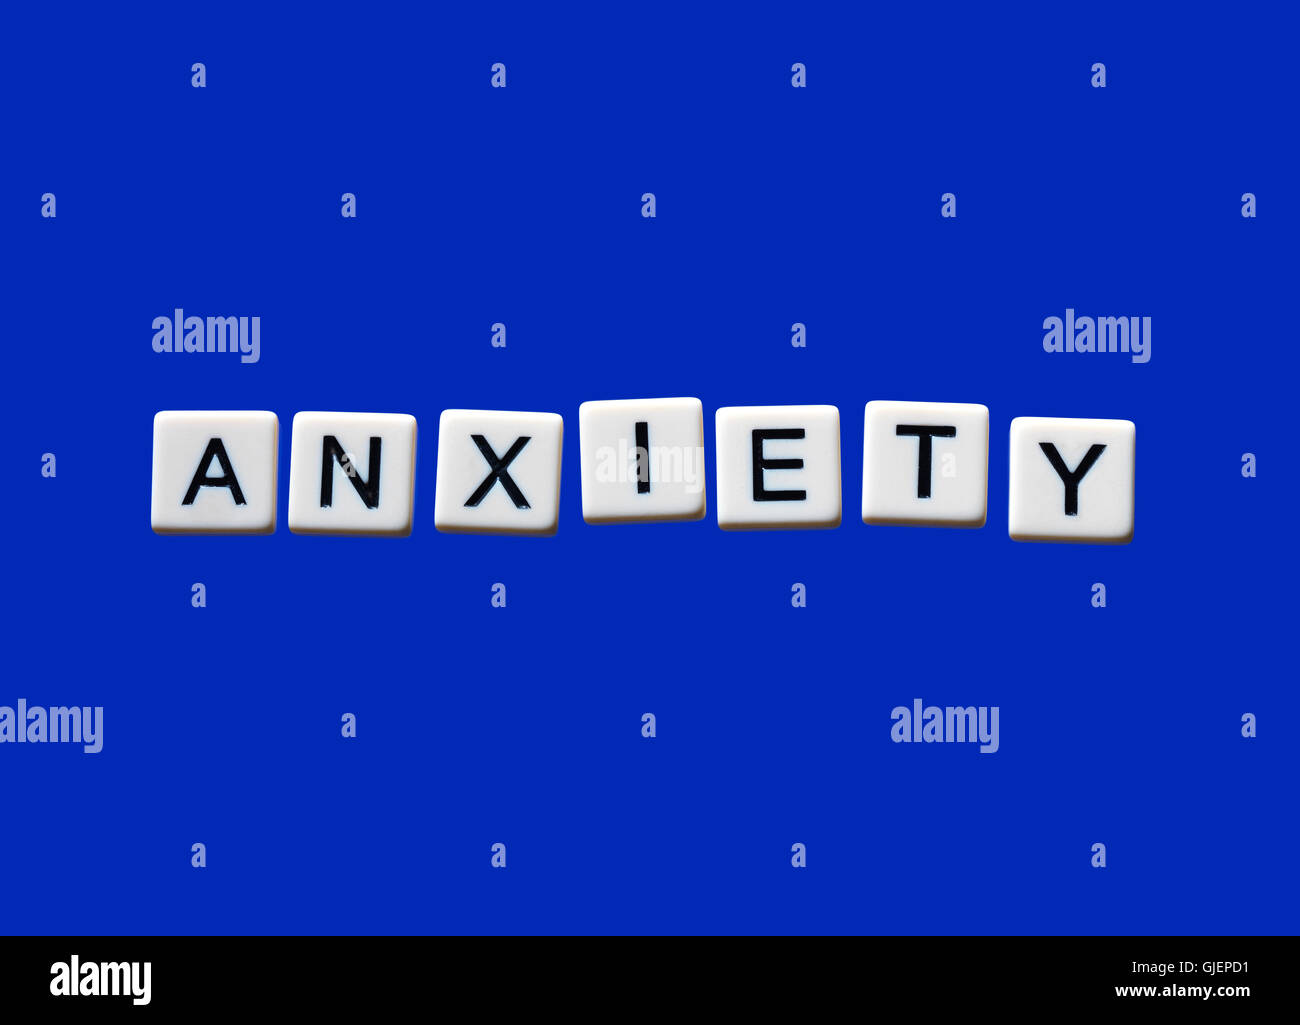 Anxiety highlighted on white blocks - Stock Image